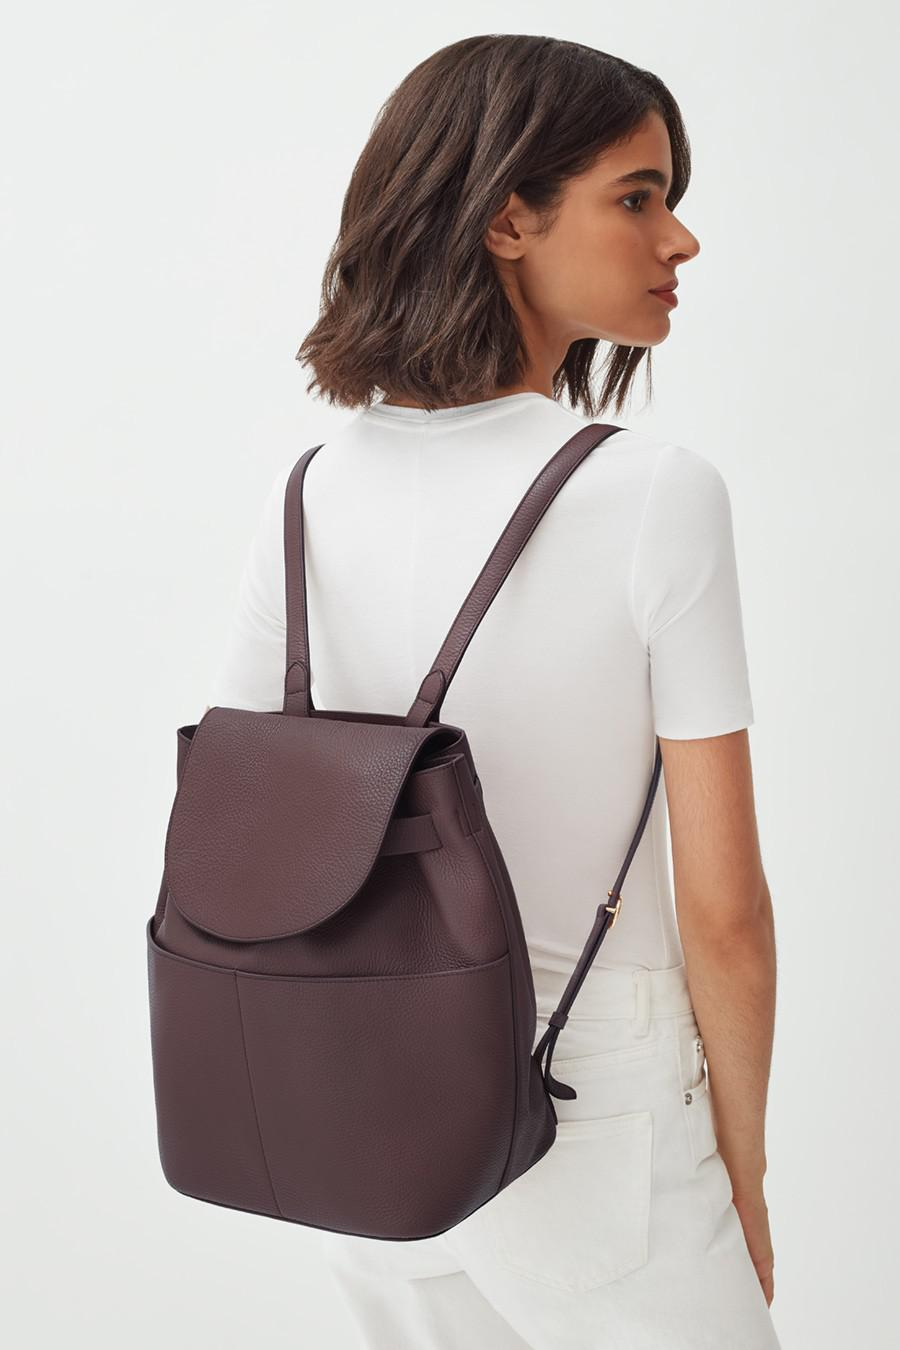 Women's Leather Backpack in Burgundy   Pebbled Leather by Cuyana 6